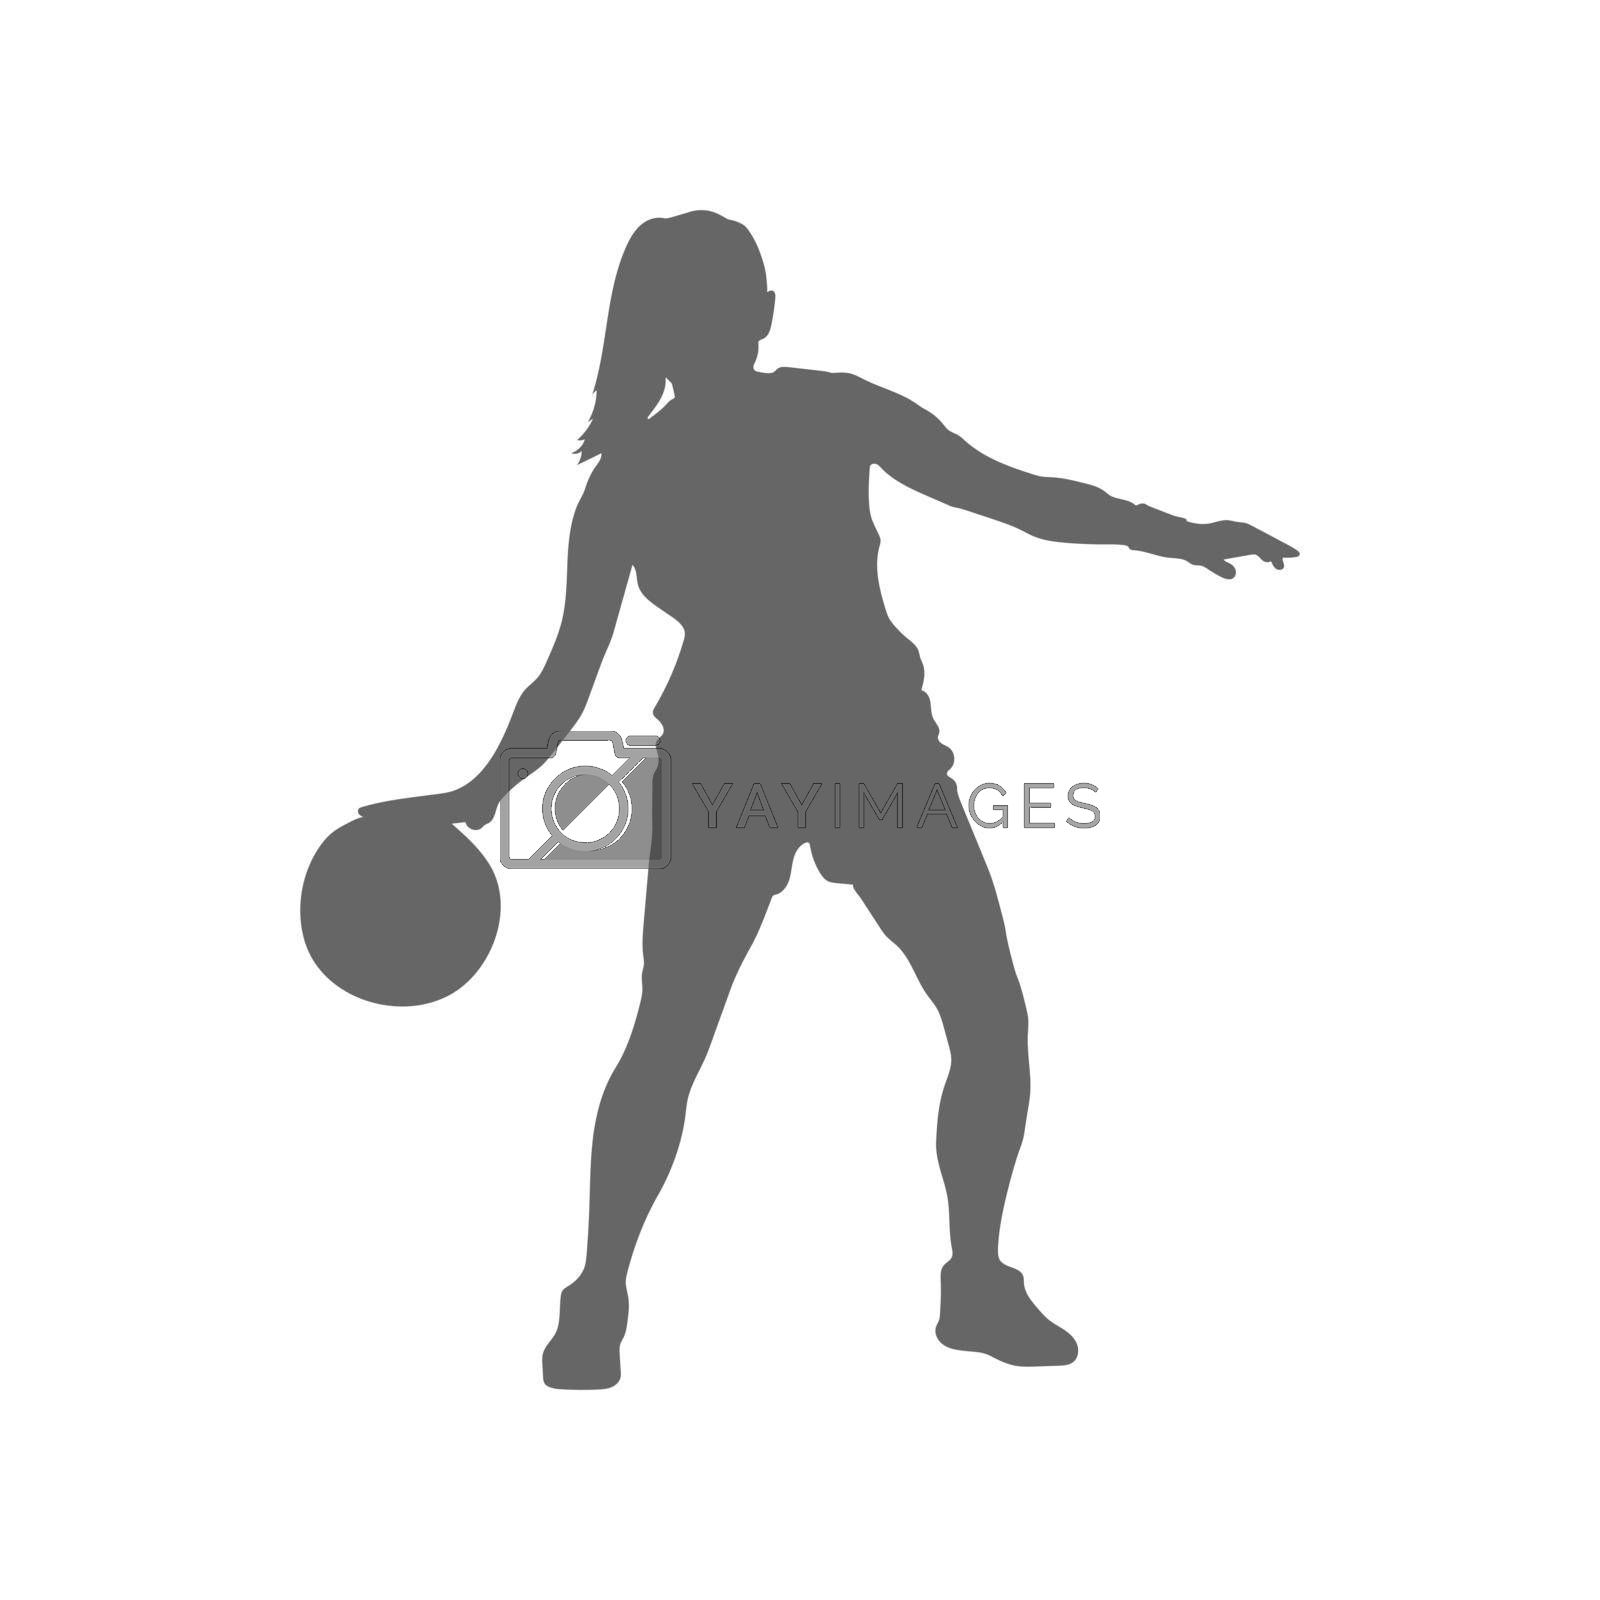 Basketball. Female basketball player with a ball filled silhouette. Simple Style